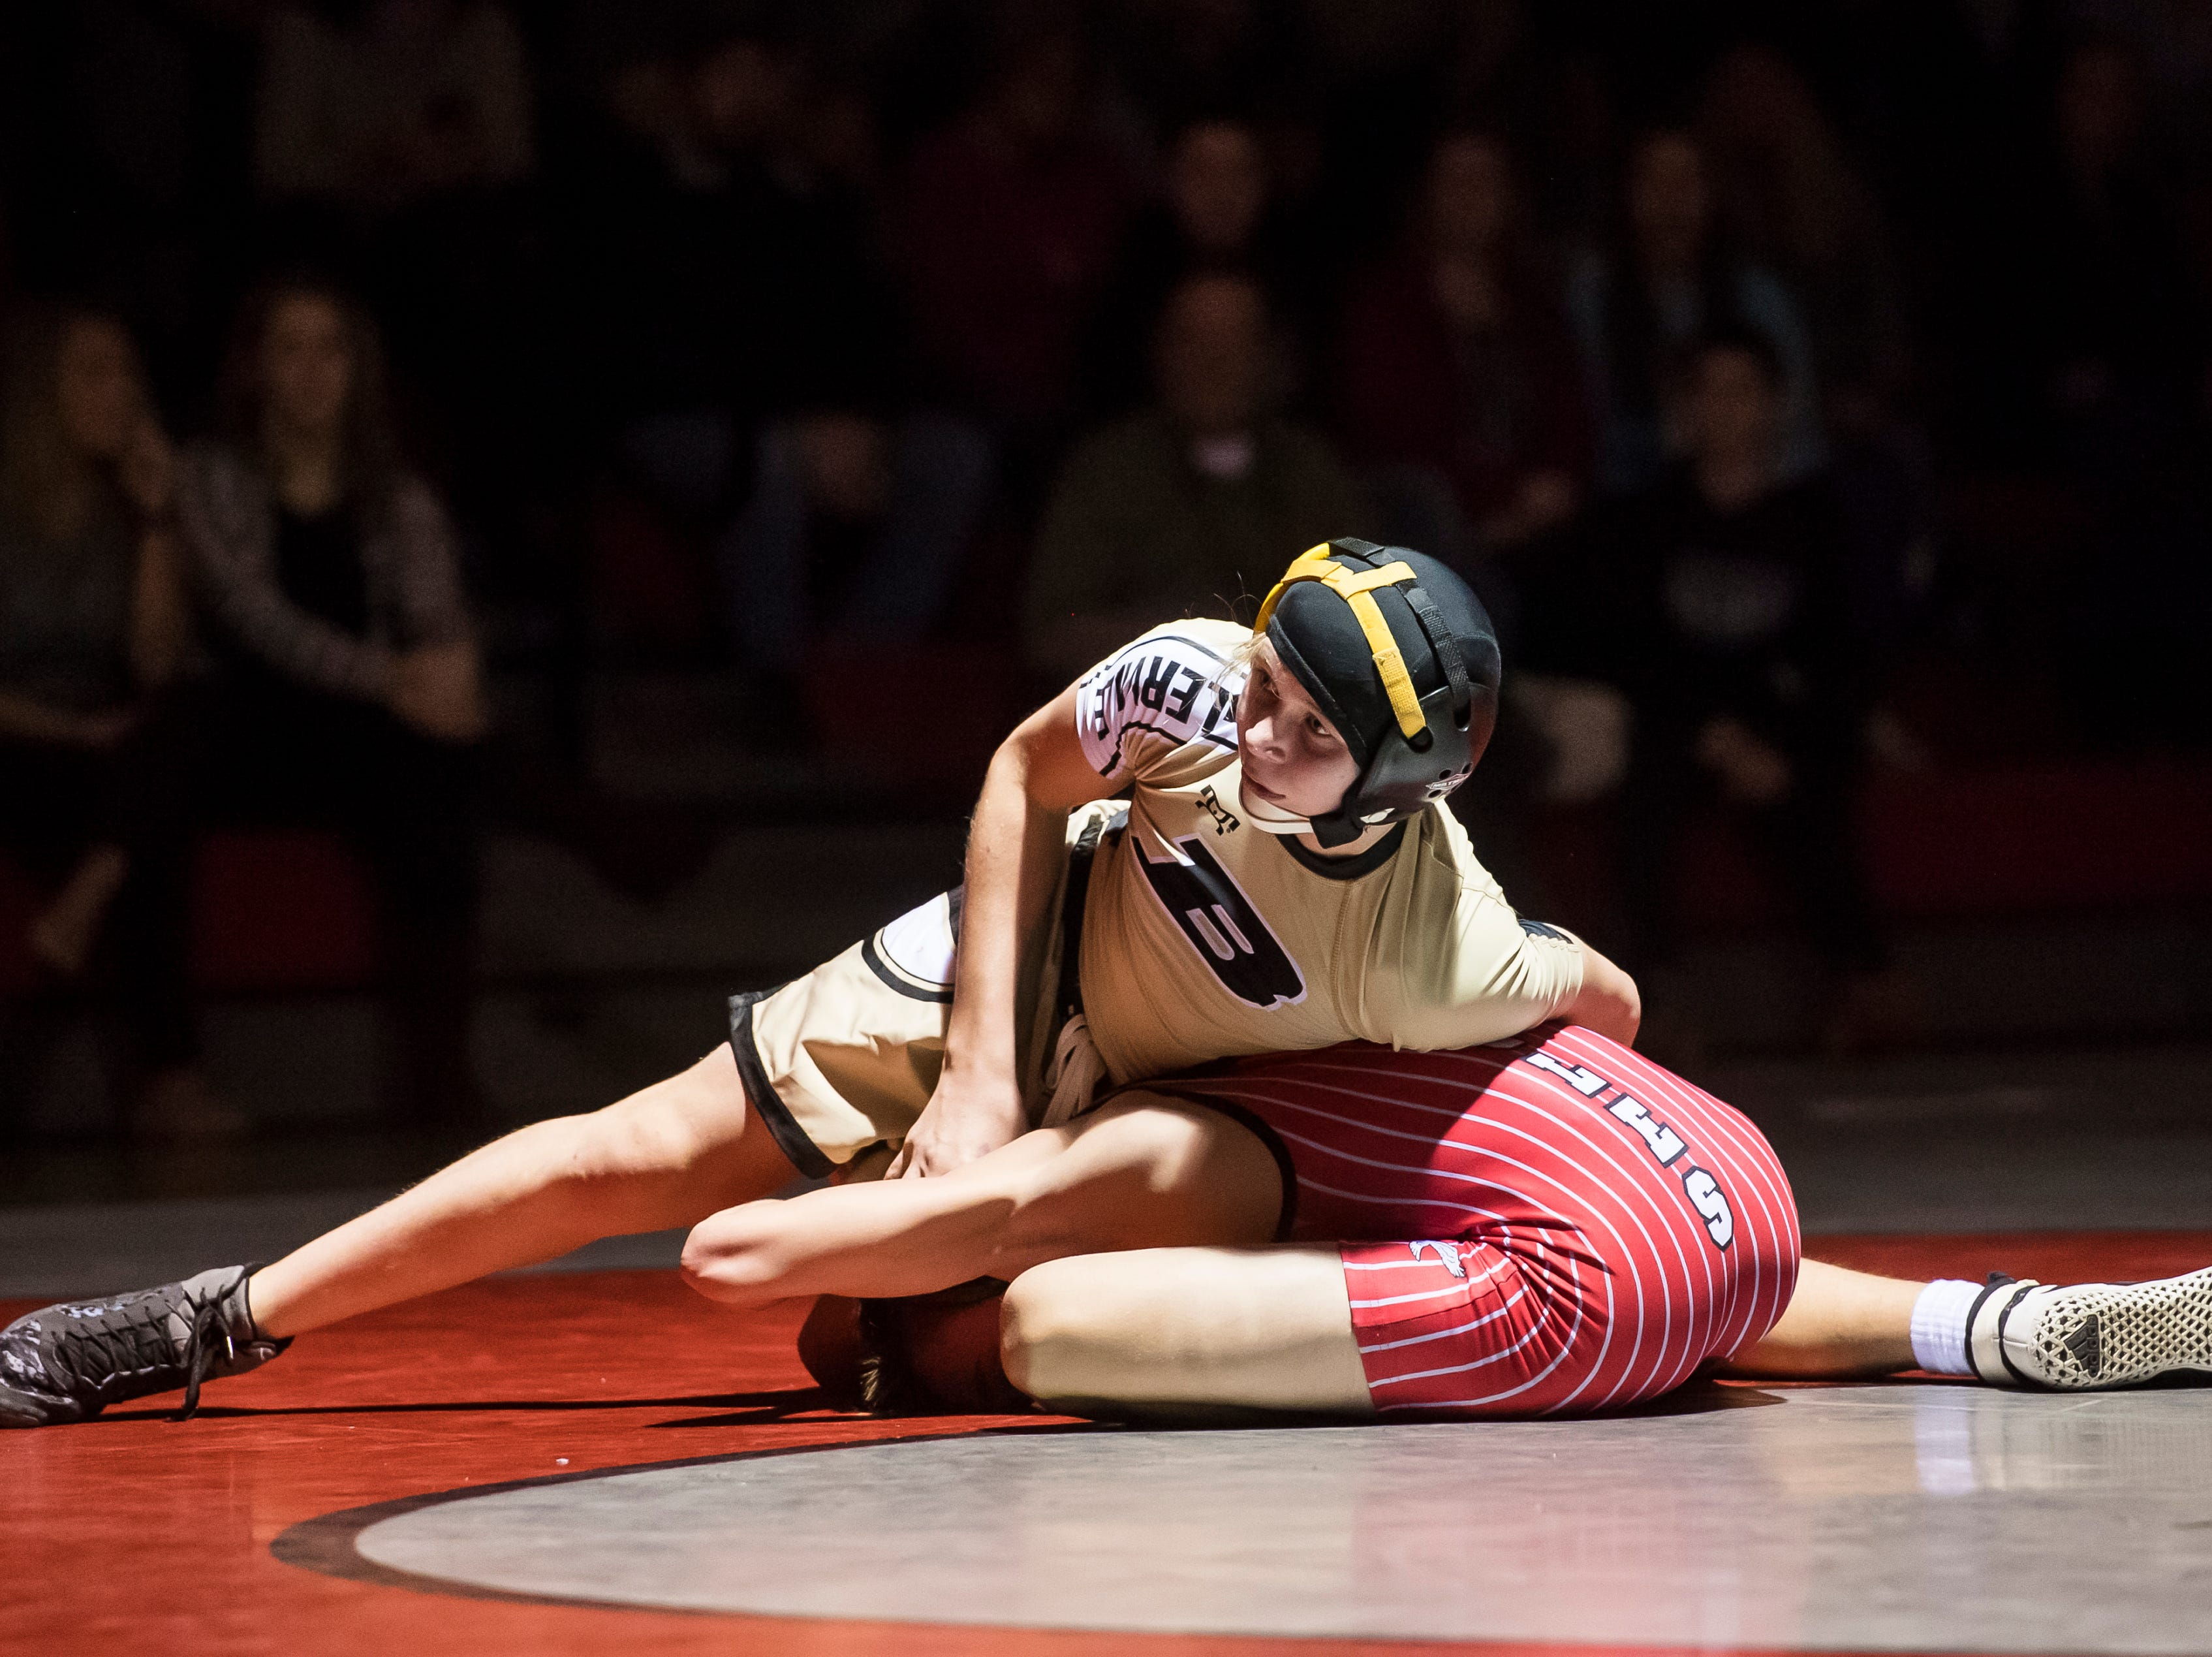 Biglerville's Ethan Slaybaugh, top, wrestles Bermudian Springs' Cole Mosier in the 113-pound bout at Bermudian Springs High School on December 13, 2018. Slabaugh won by fall in the third period but the Eagles won the duel 51-27.